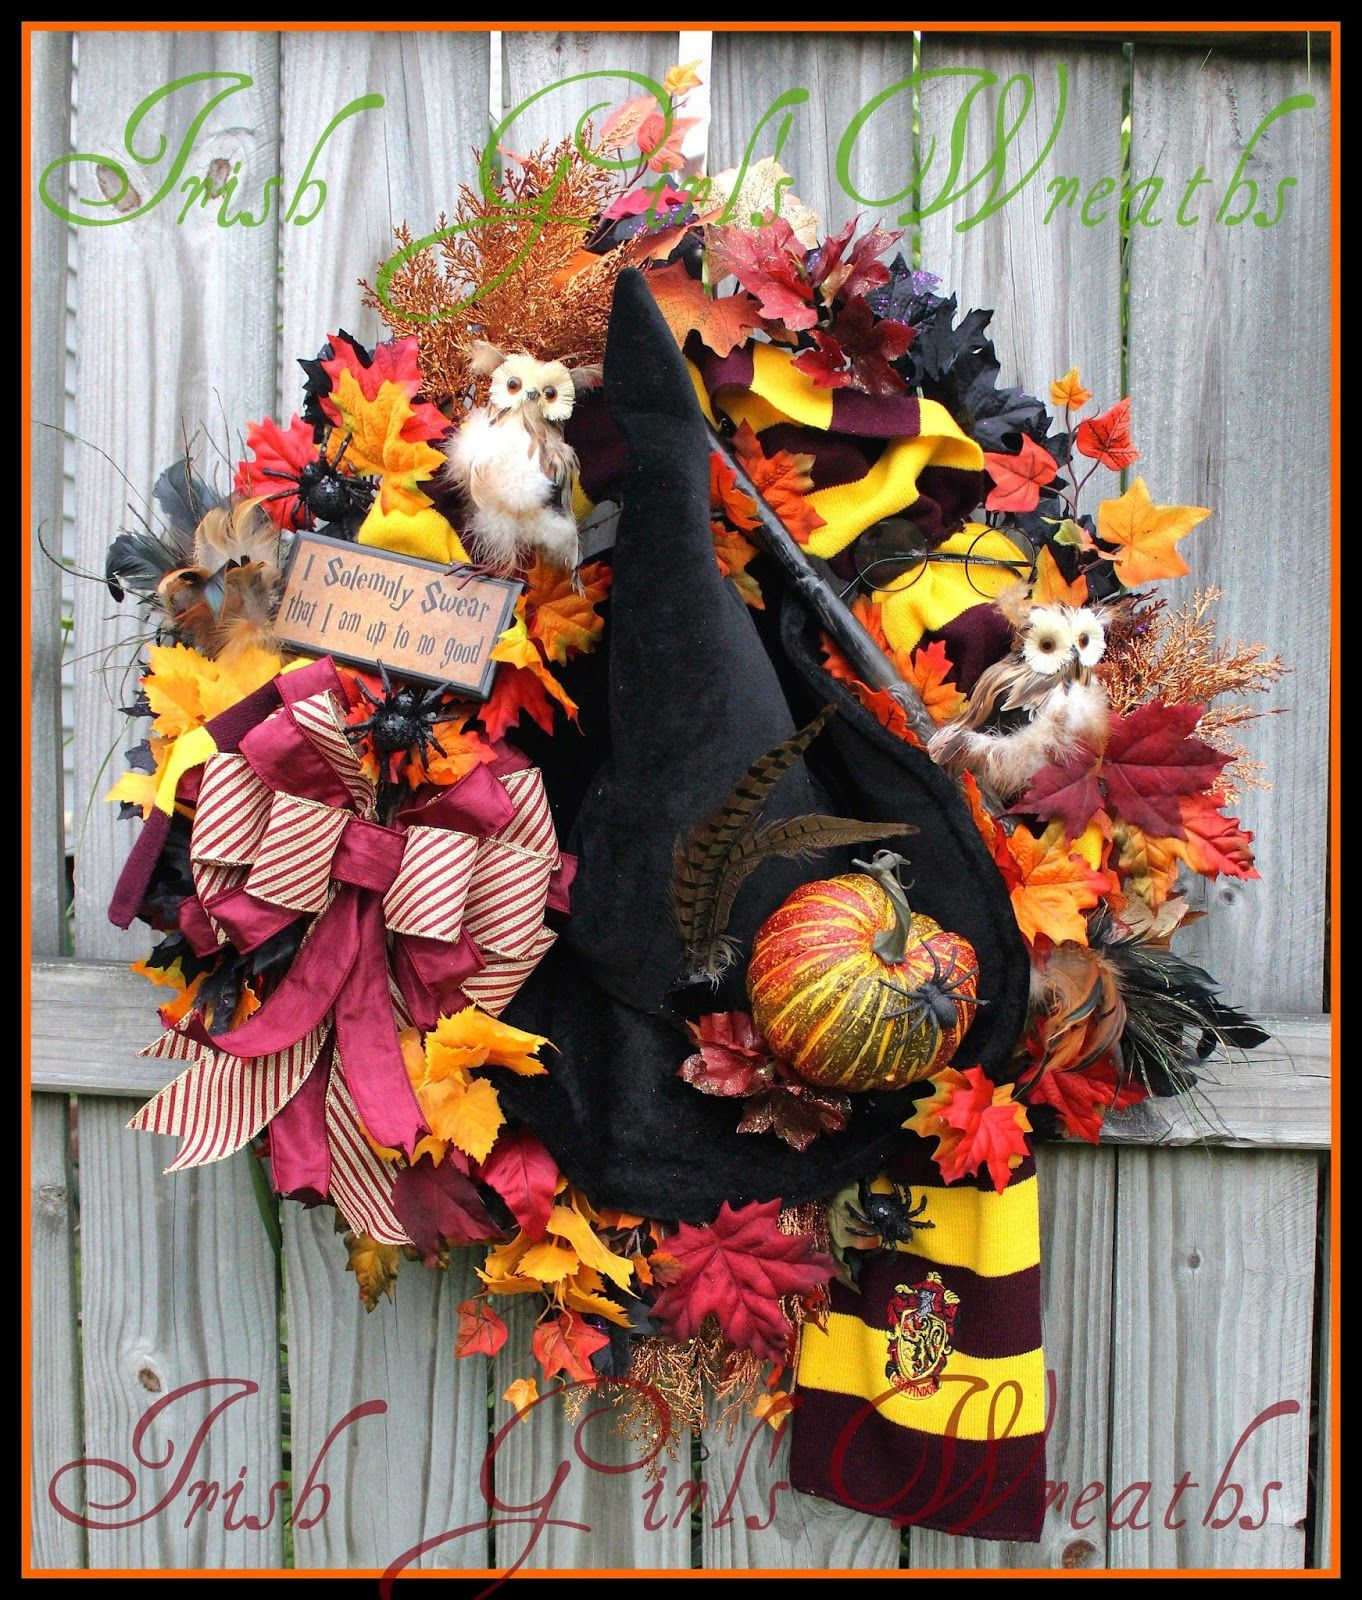 igw gallery harry potter hogwarts halloween wreath owl prof mcgonnagall witch hat - Hogwarts Halloween